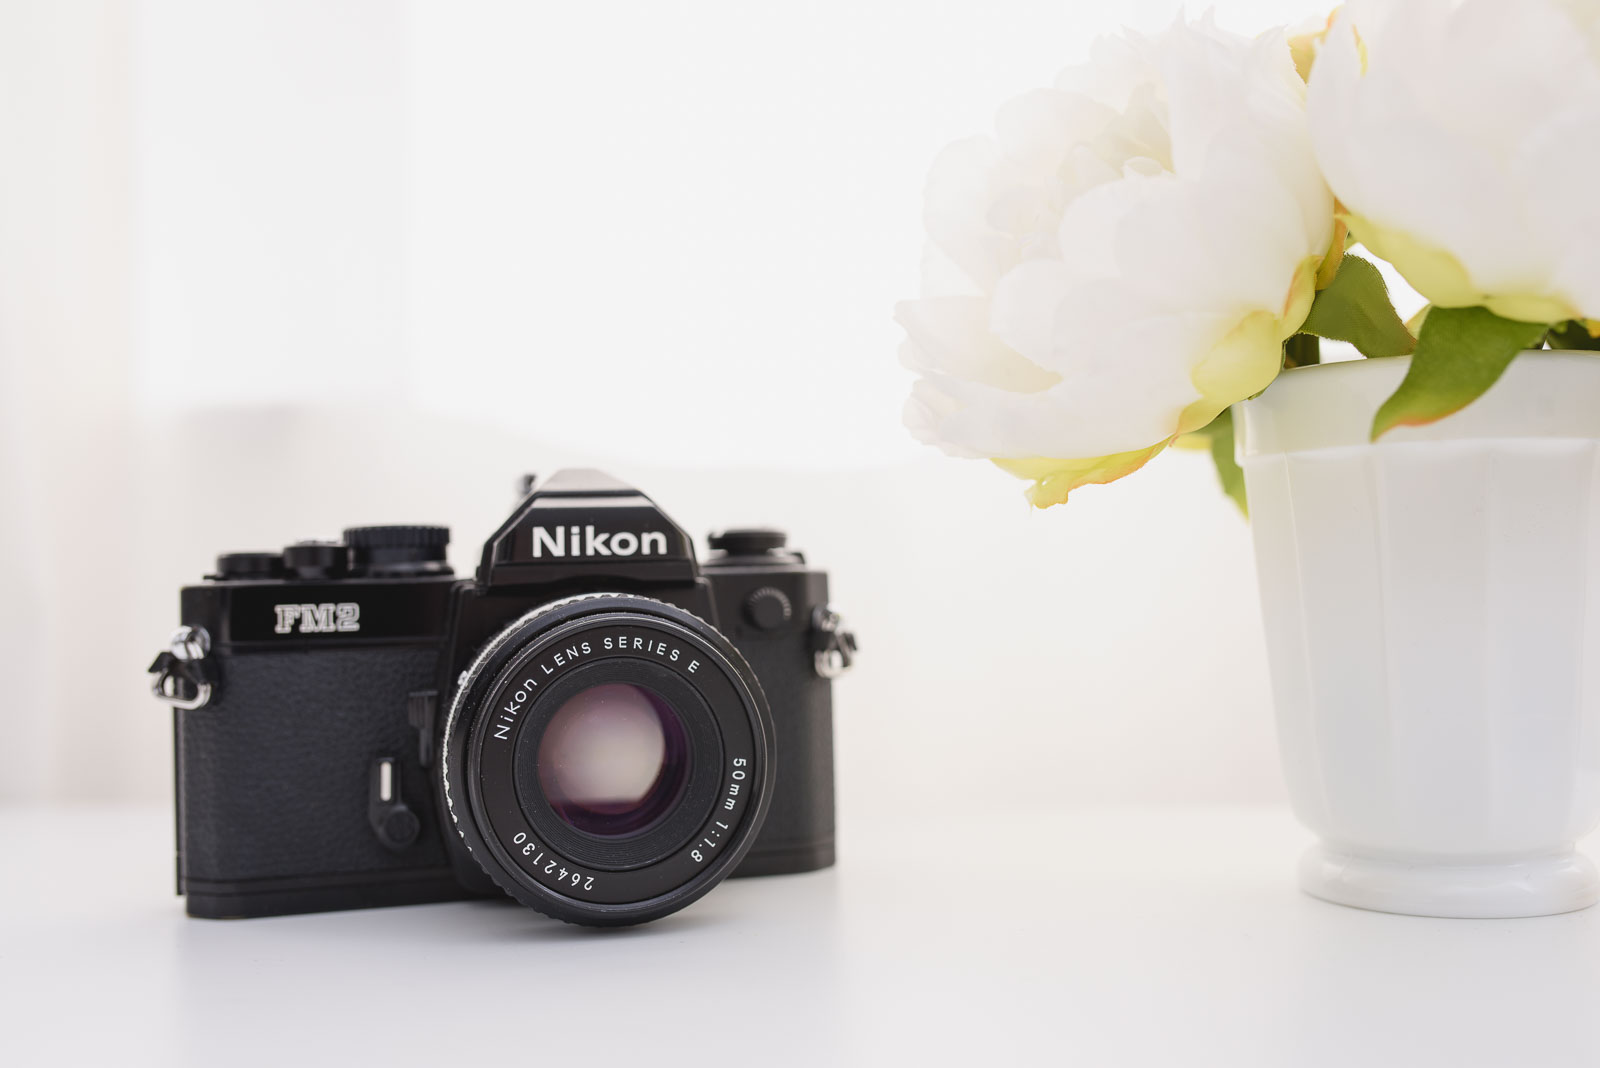 Image of a vintage Nikon FM2 camera with a 50mm lens. Photo by N. Lalor Photography in Greenwich, Connecticut.